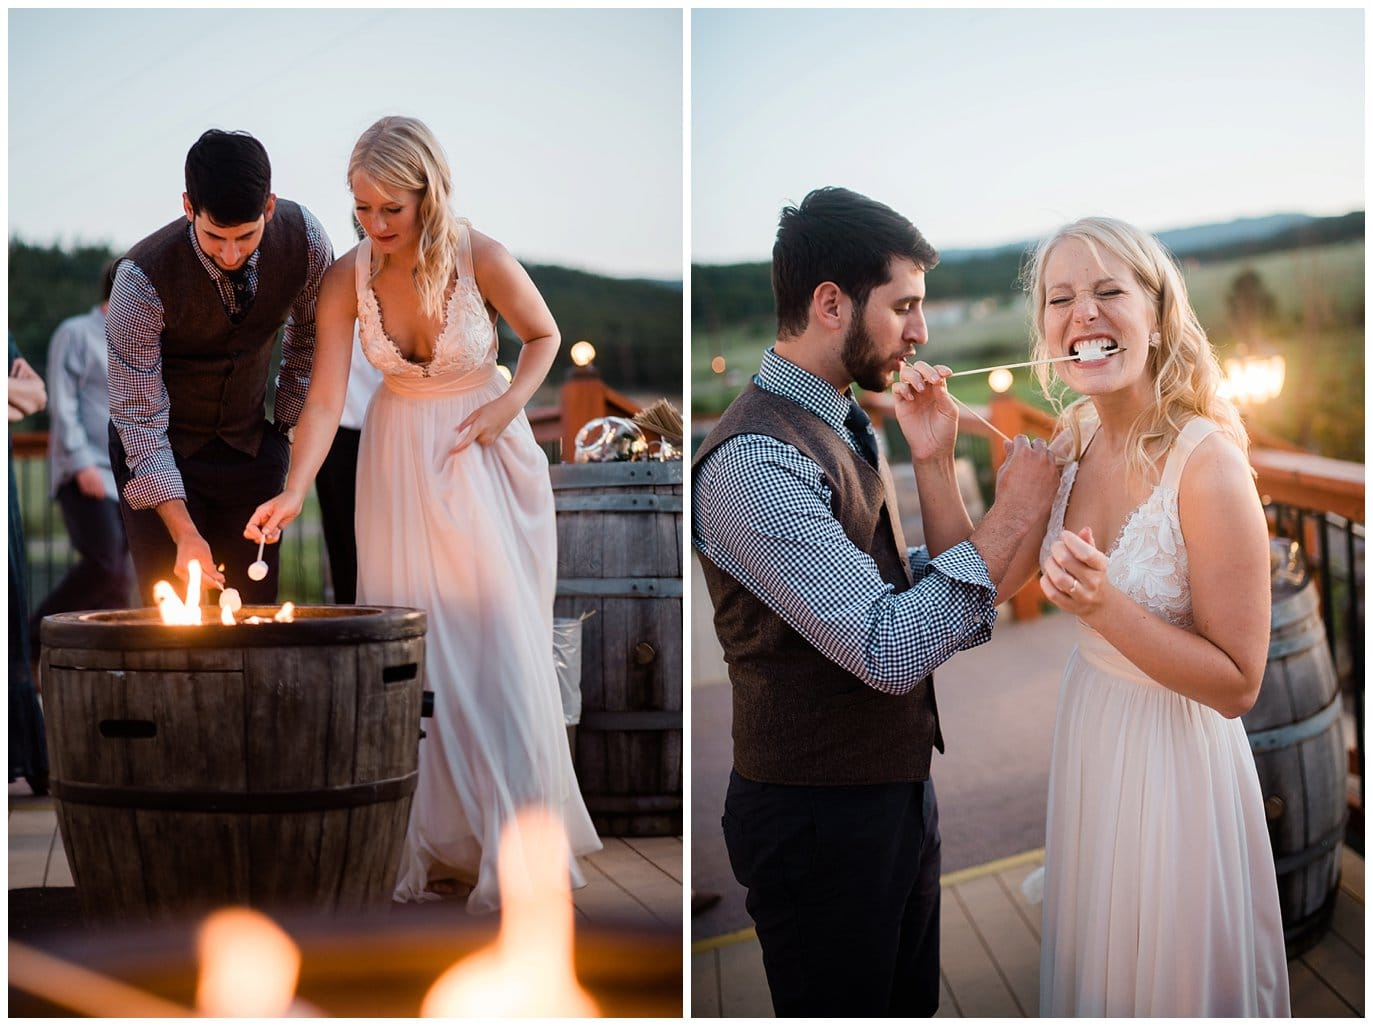 bride and groom eating s'mores by firepit at Deer Creek Valley Ranch wedding by Colorado Wedding Photographer Jennie Crate Photographer